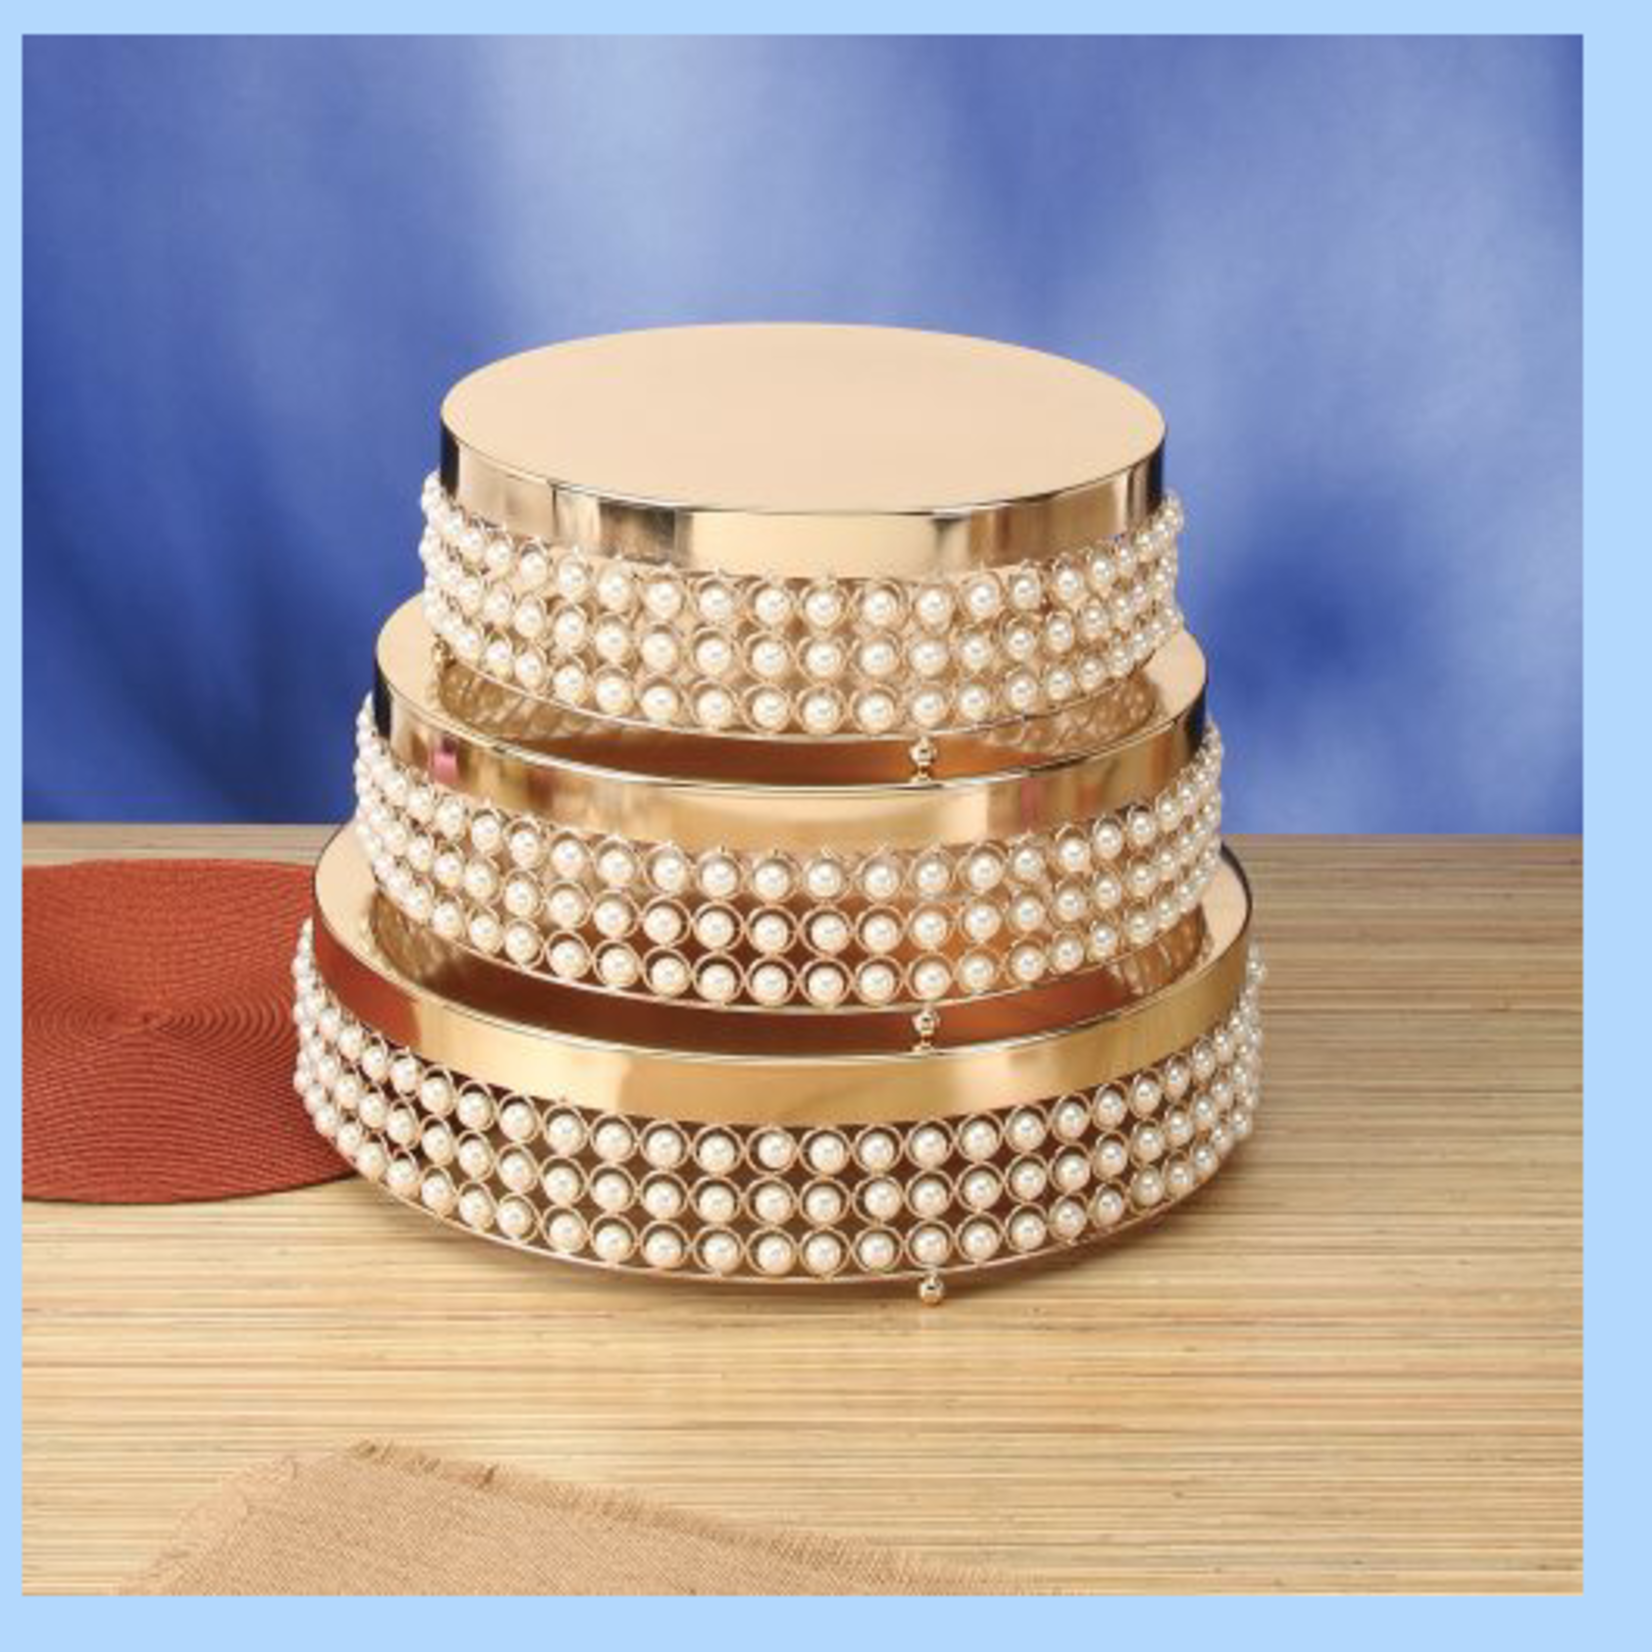 """4.75""""H X 12""""D  ROUND METAL CAKE STAND W/ PEARLS"""